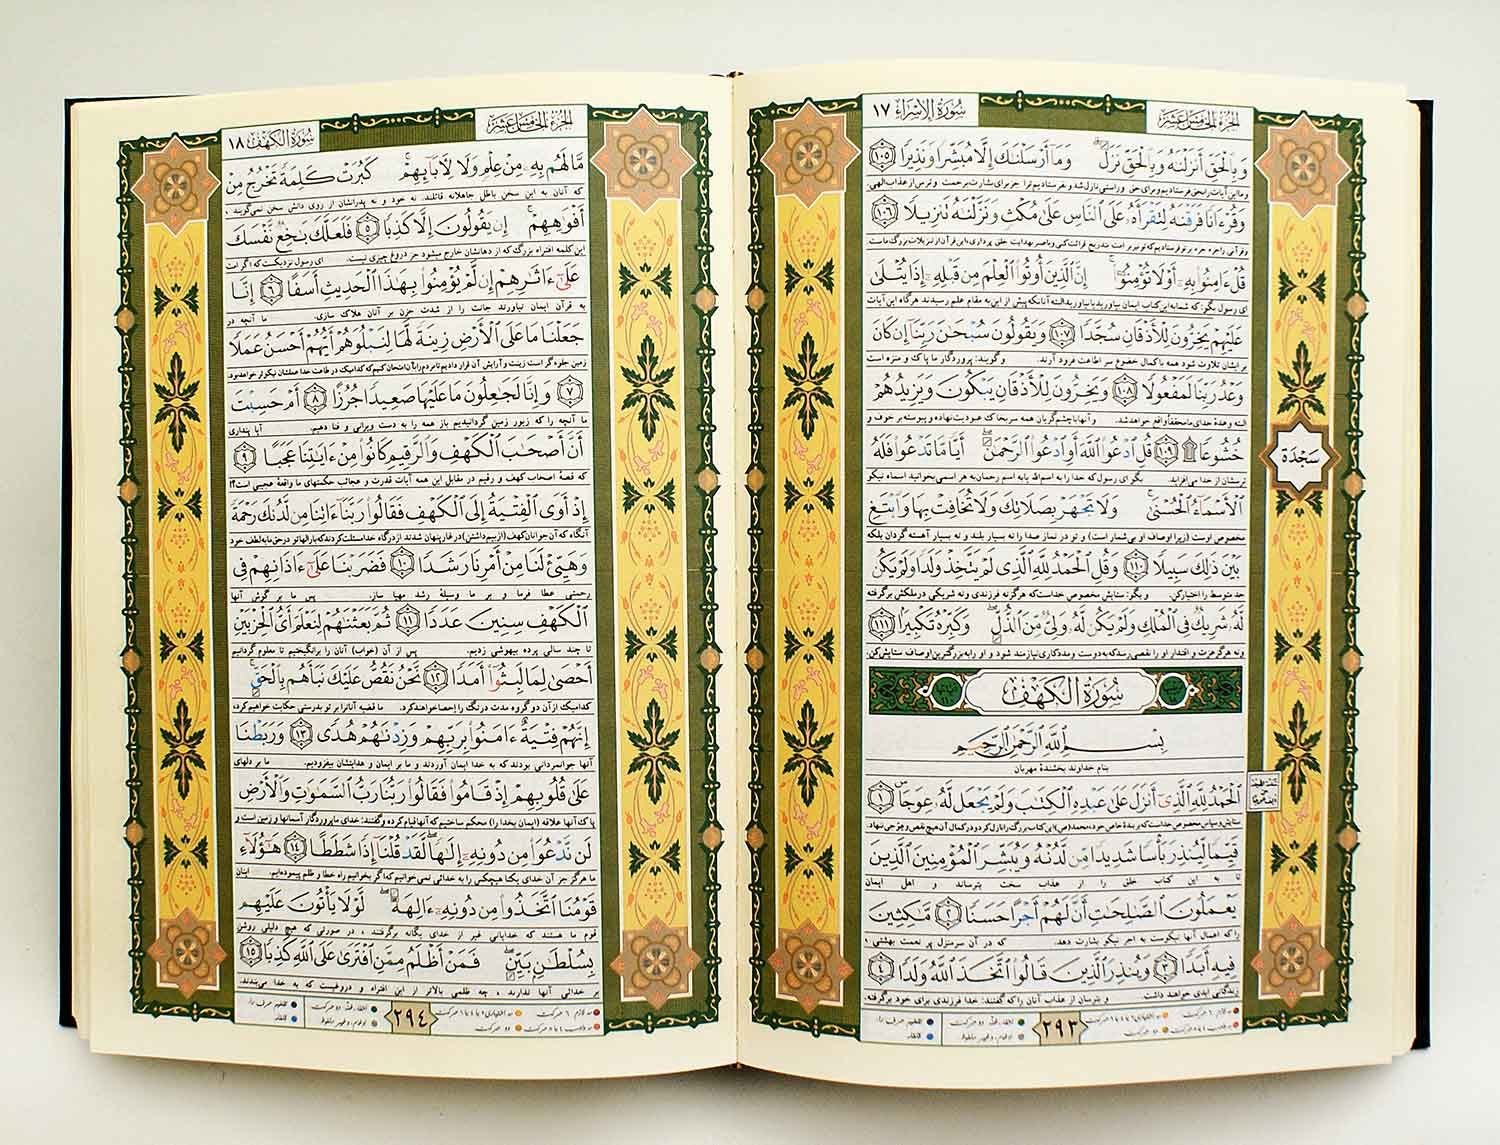 Tajweed Quran with Meanings Translation in Persian